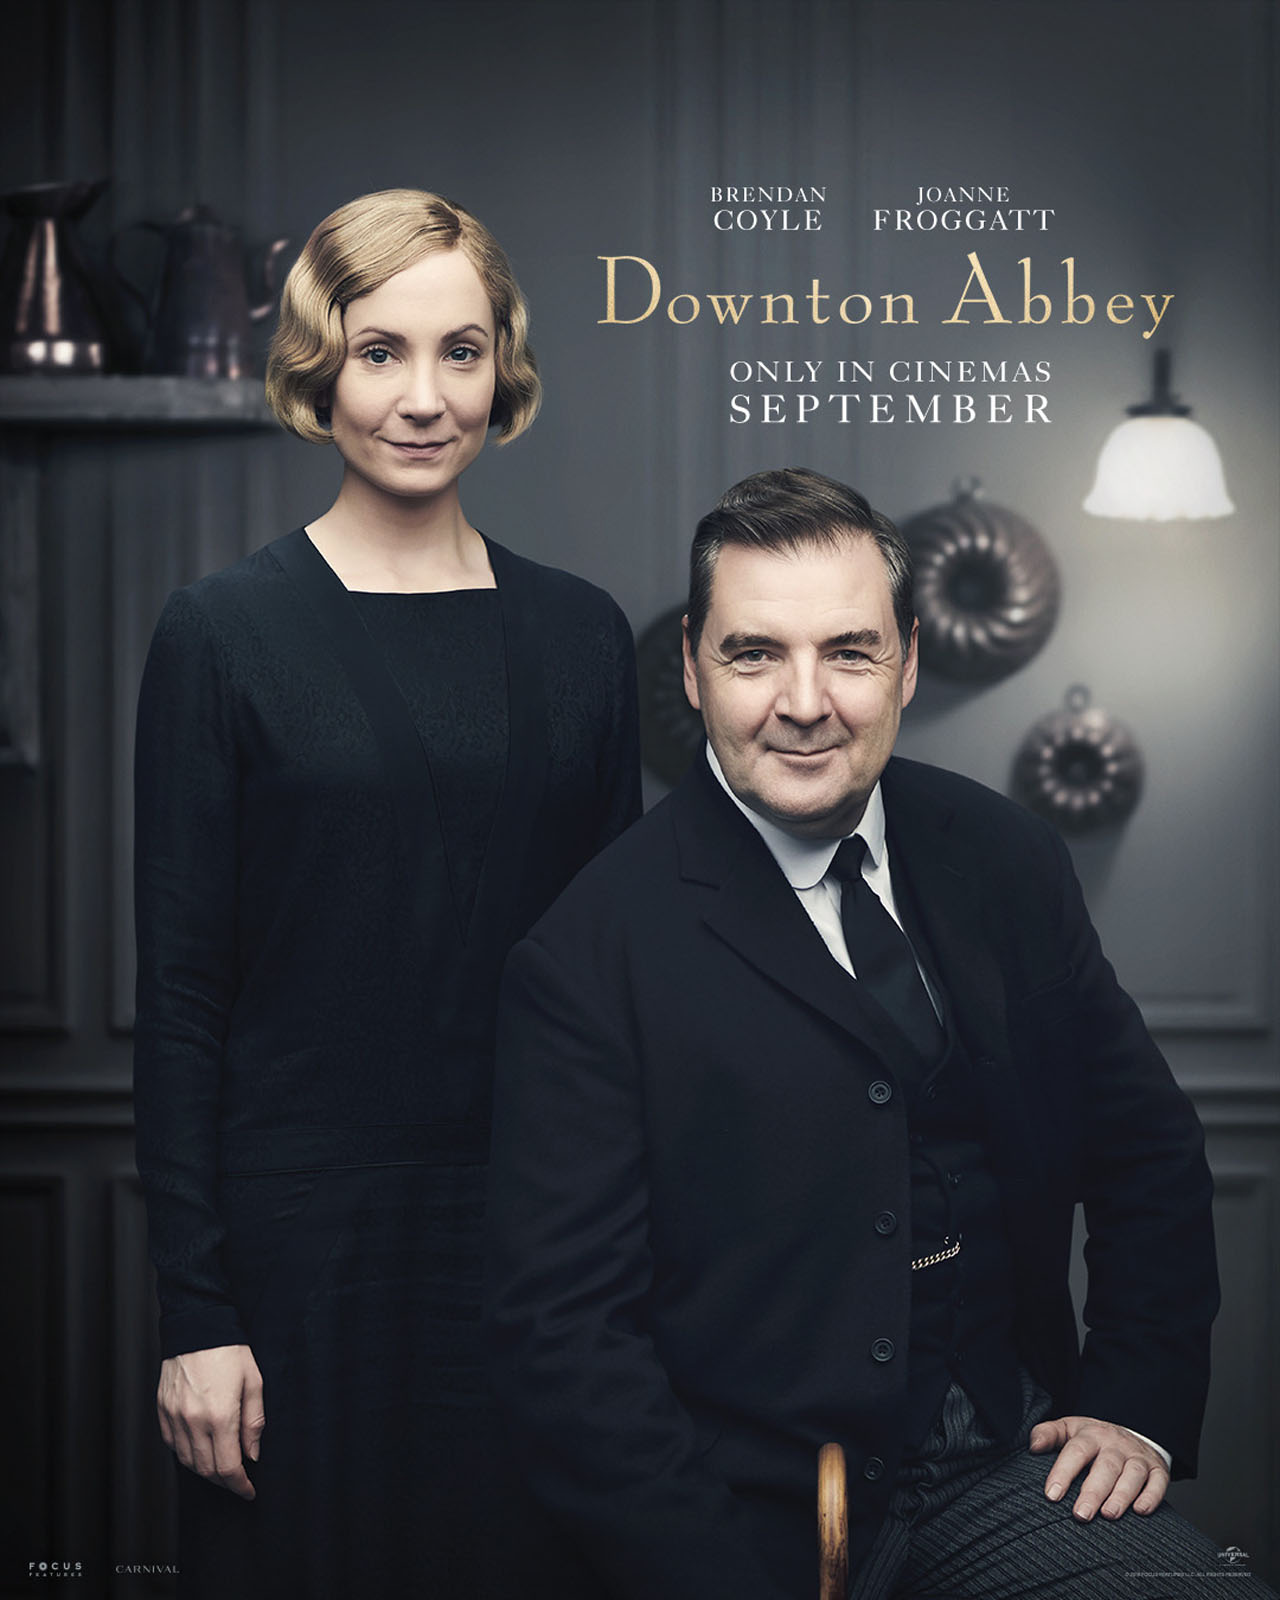 Downton Abbey The Movie Character Posters Mr and Mrs Bates